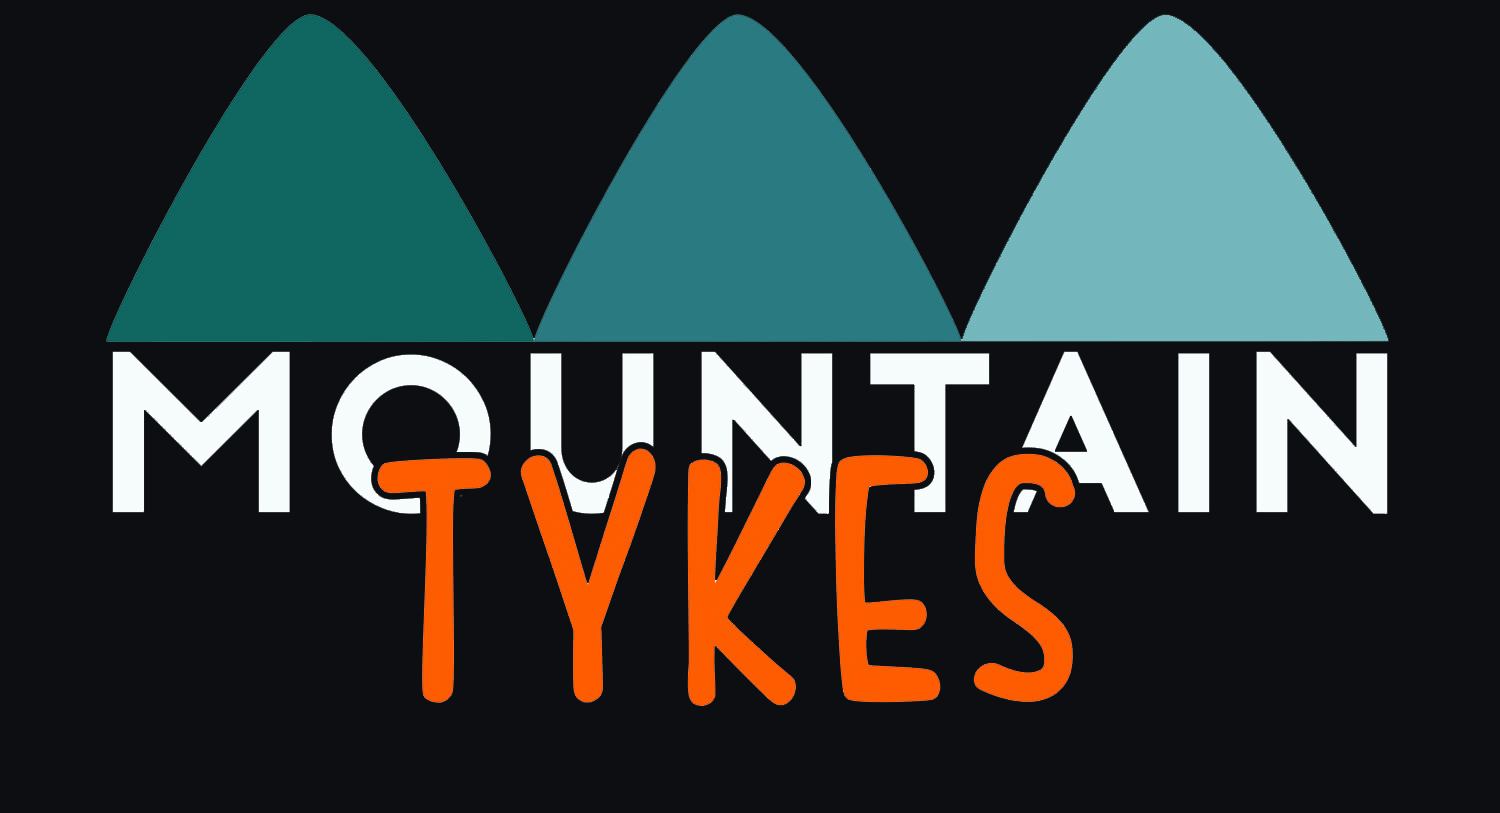 mountaintykes for web.jpg